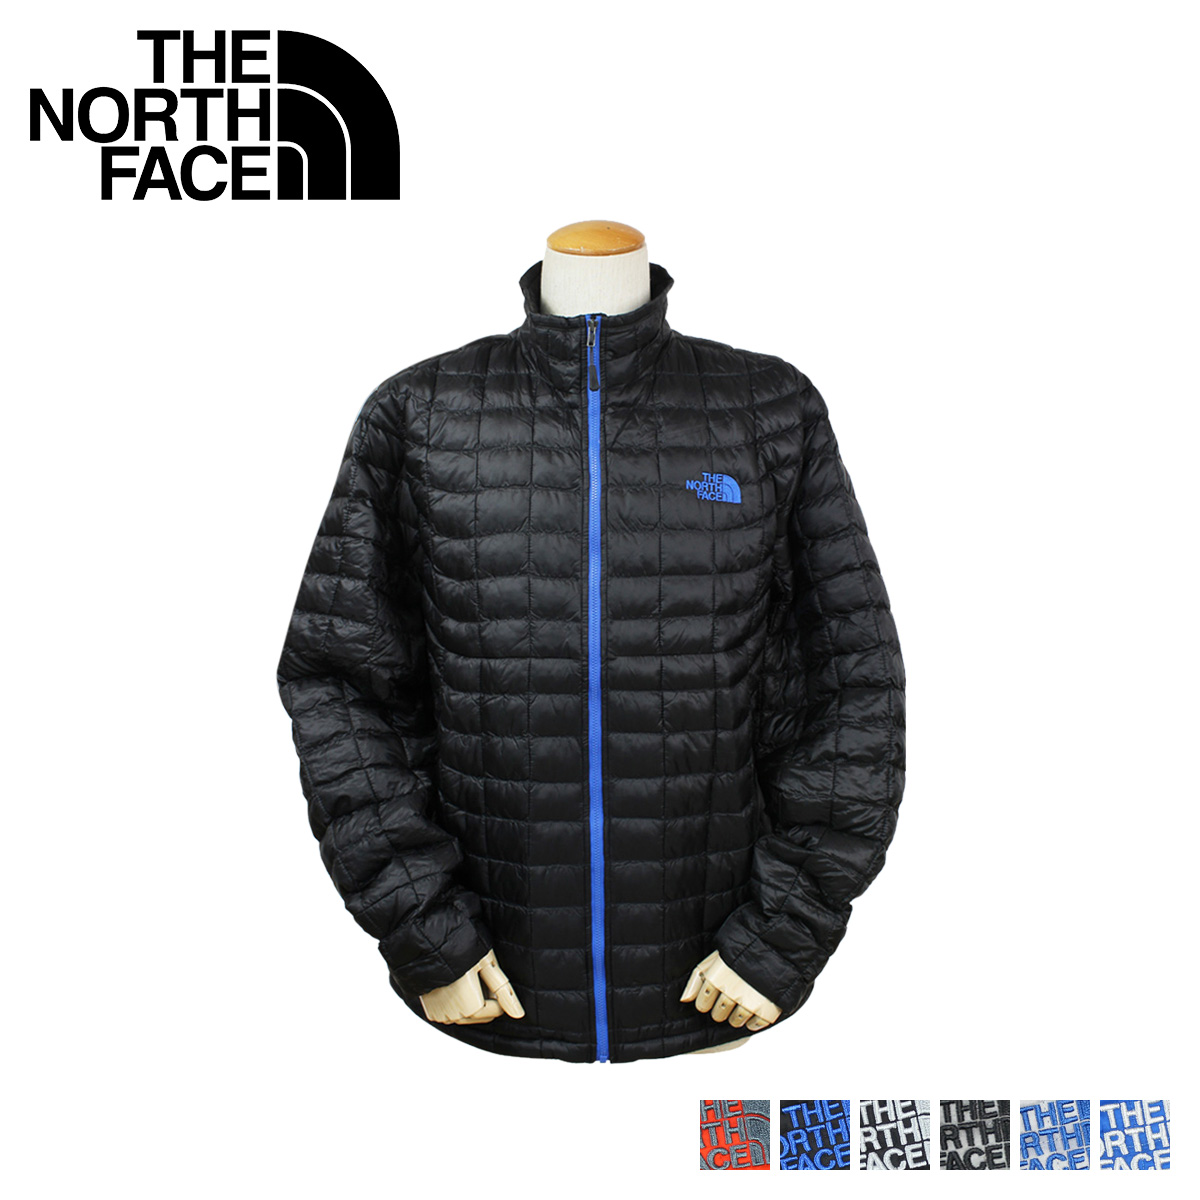 bc5eb059e2588d The north face THE NORTH FACE Quilted Jacket insulator jacket men's 2014  years new C762 4 ...